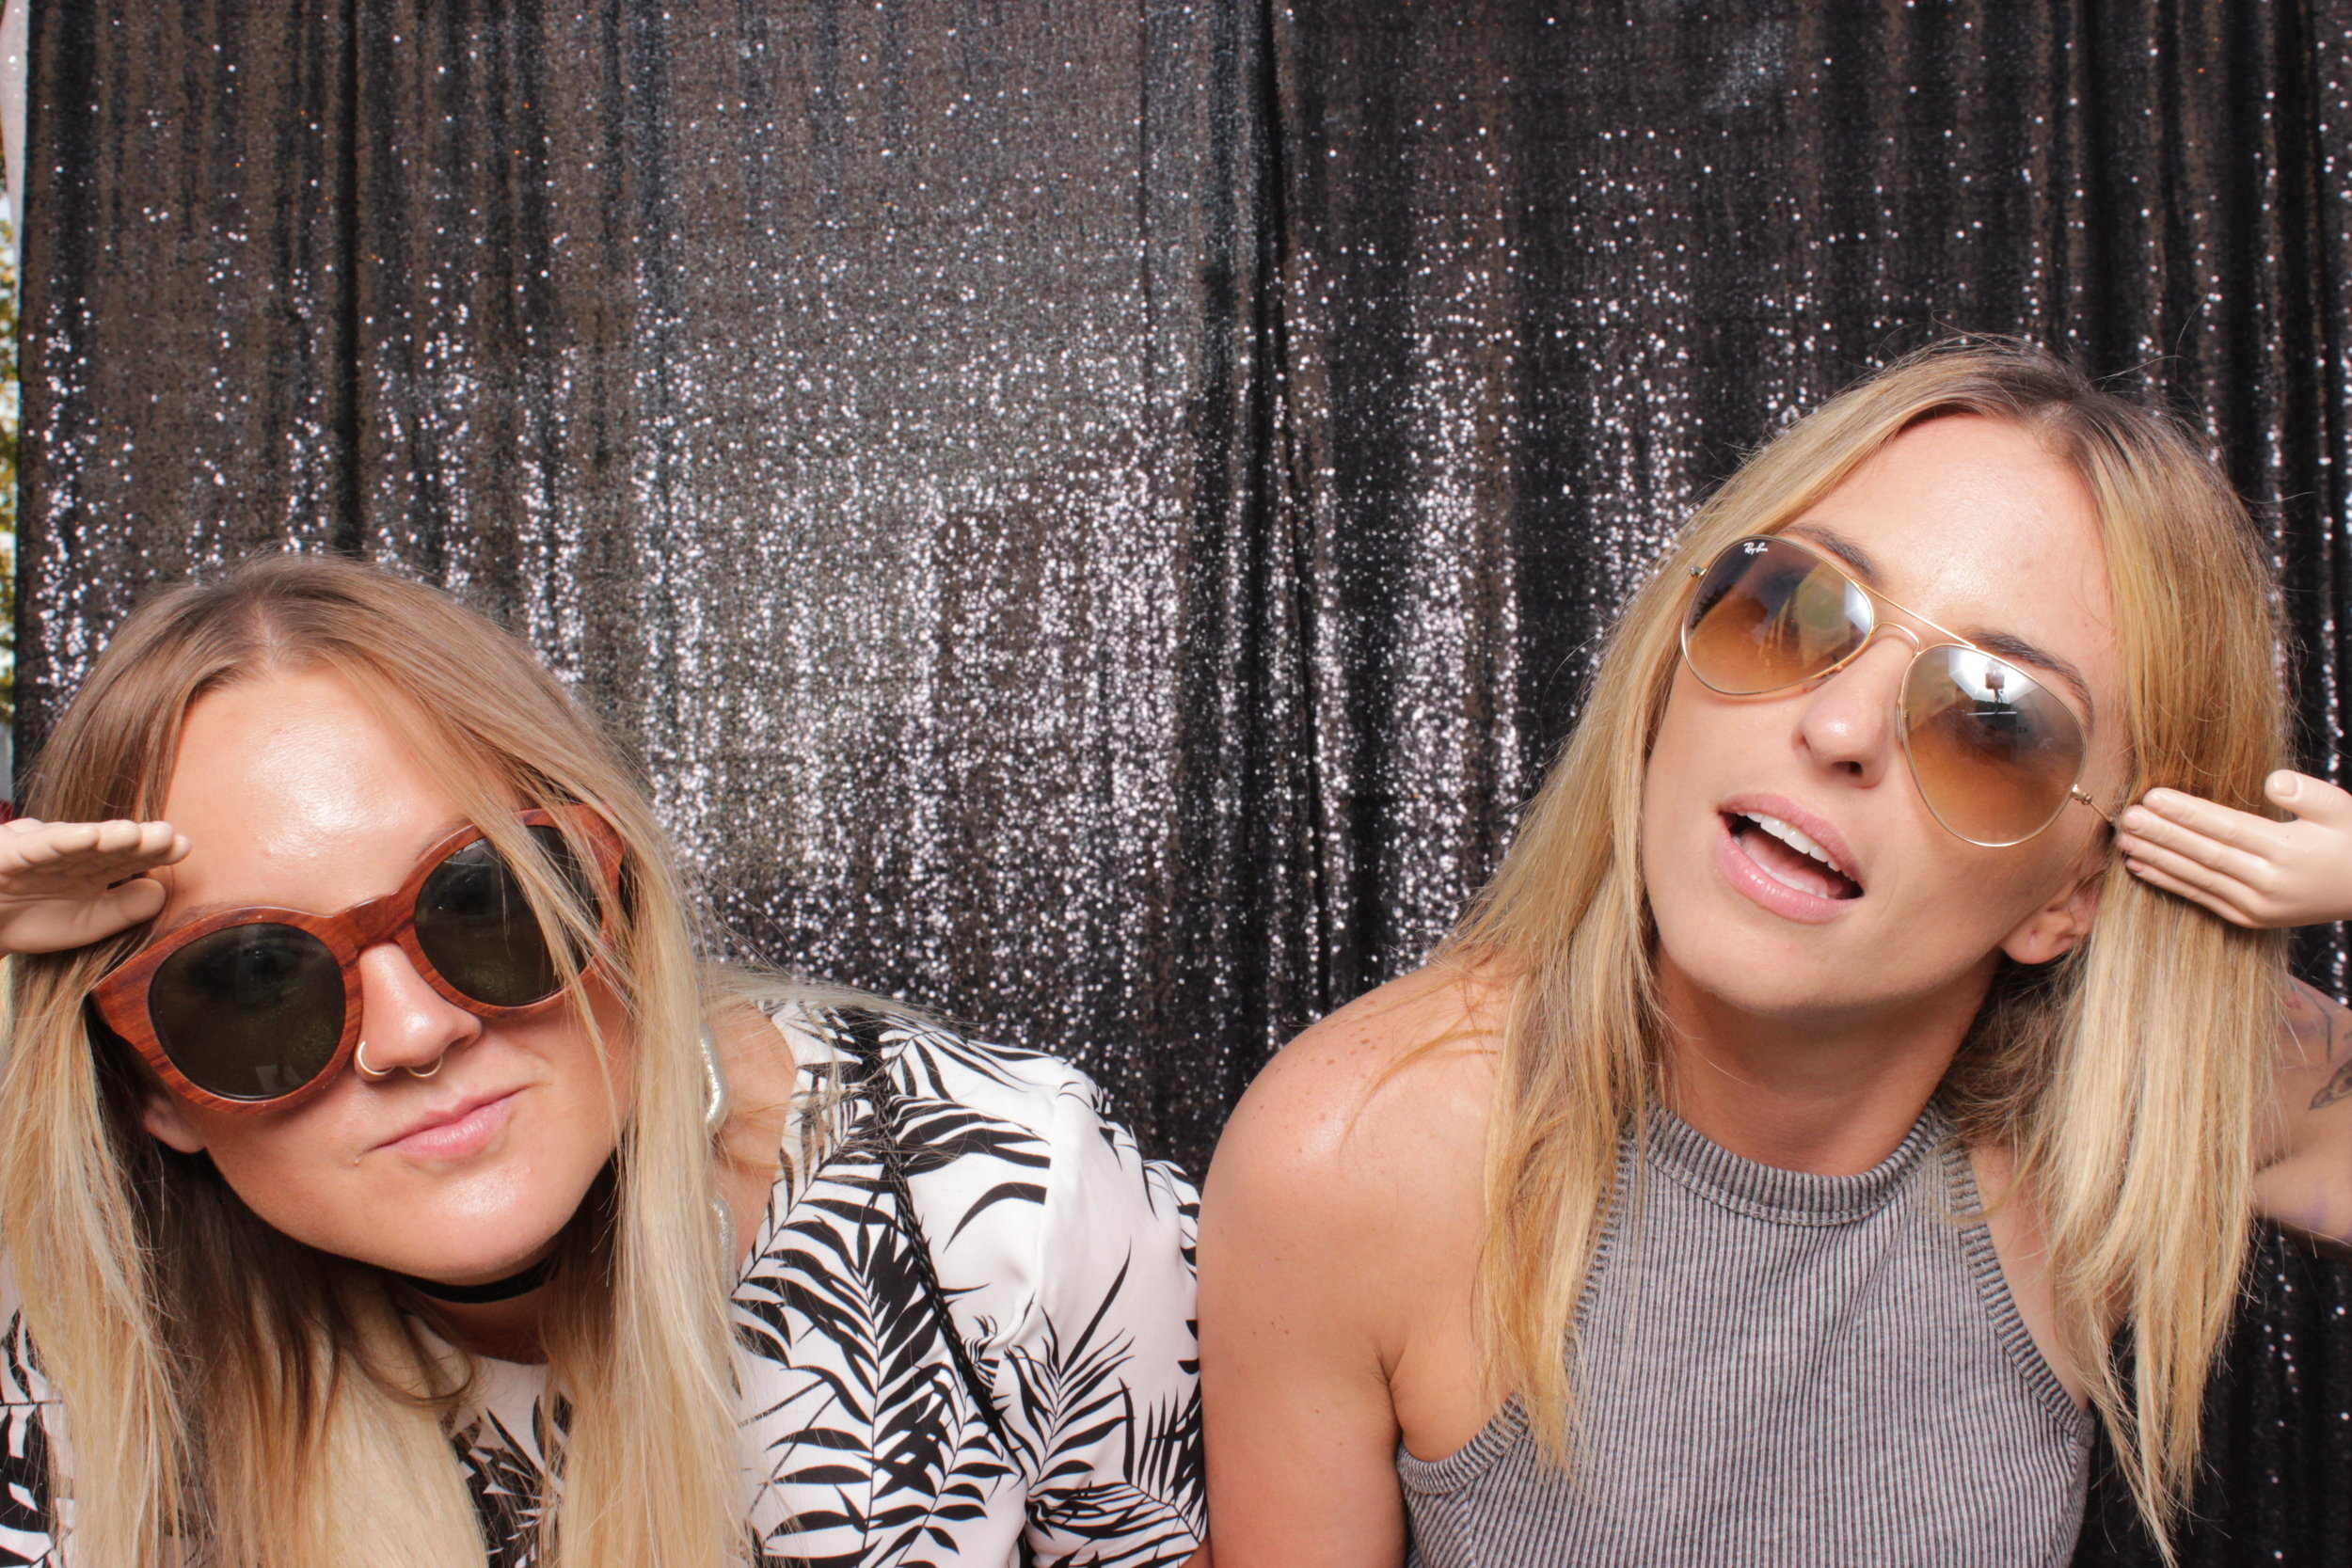 build-corporate-party-photo-booth-rental-salute-tiny-hands